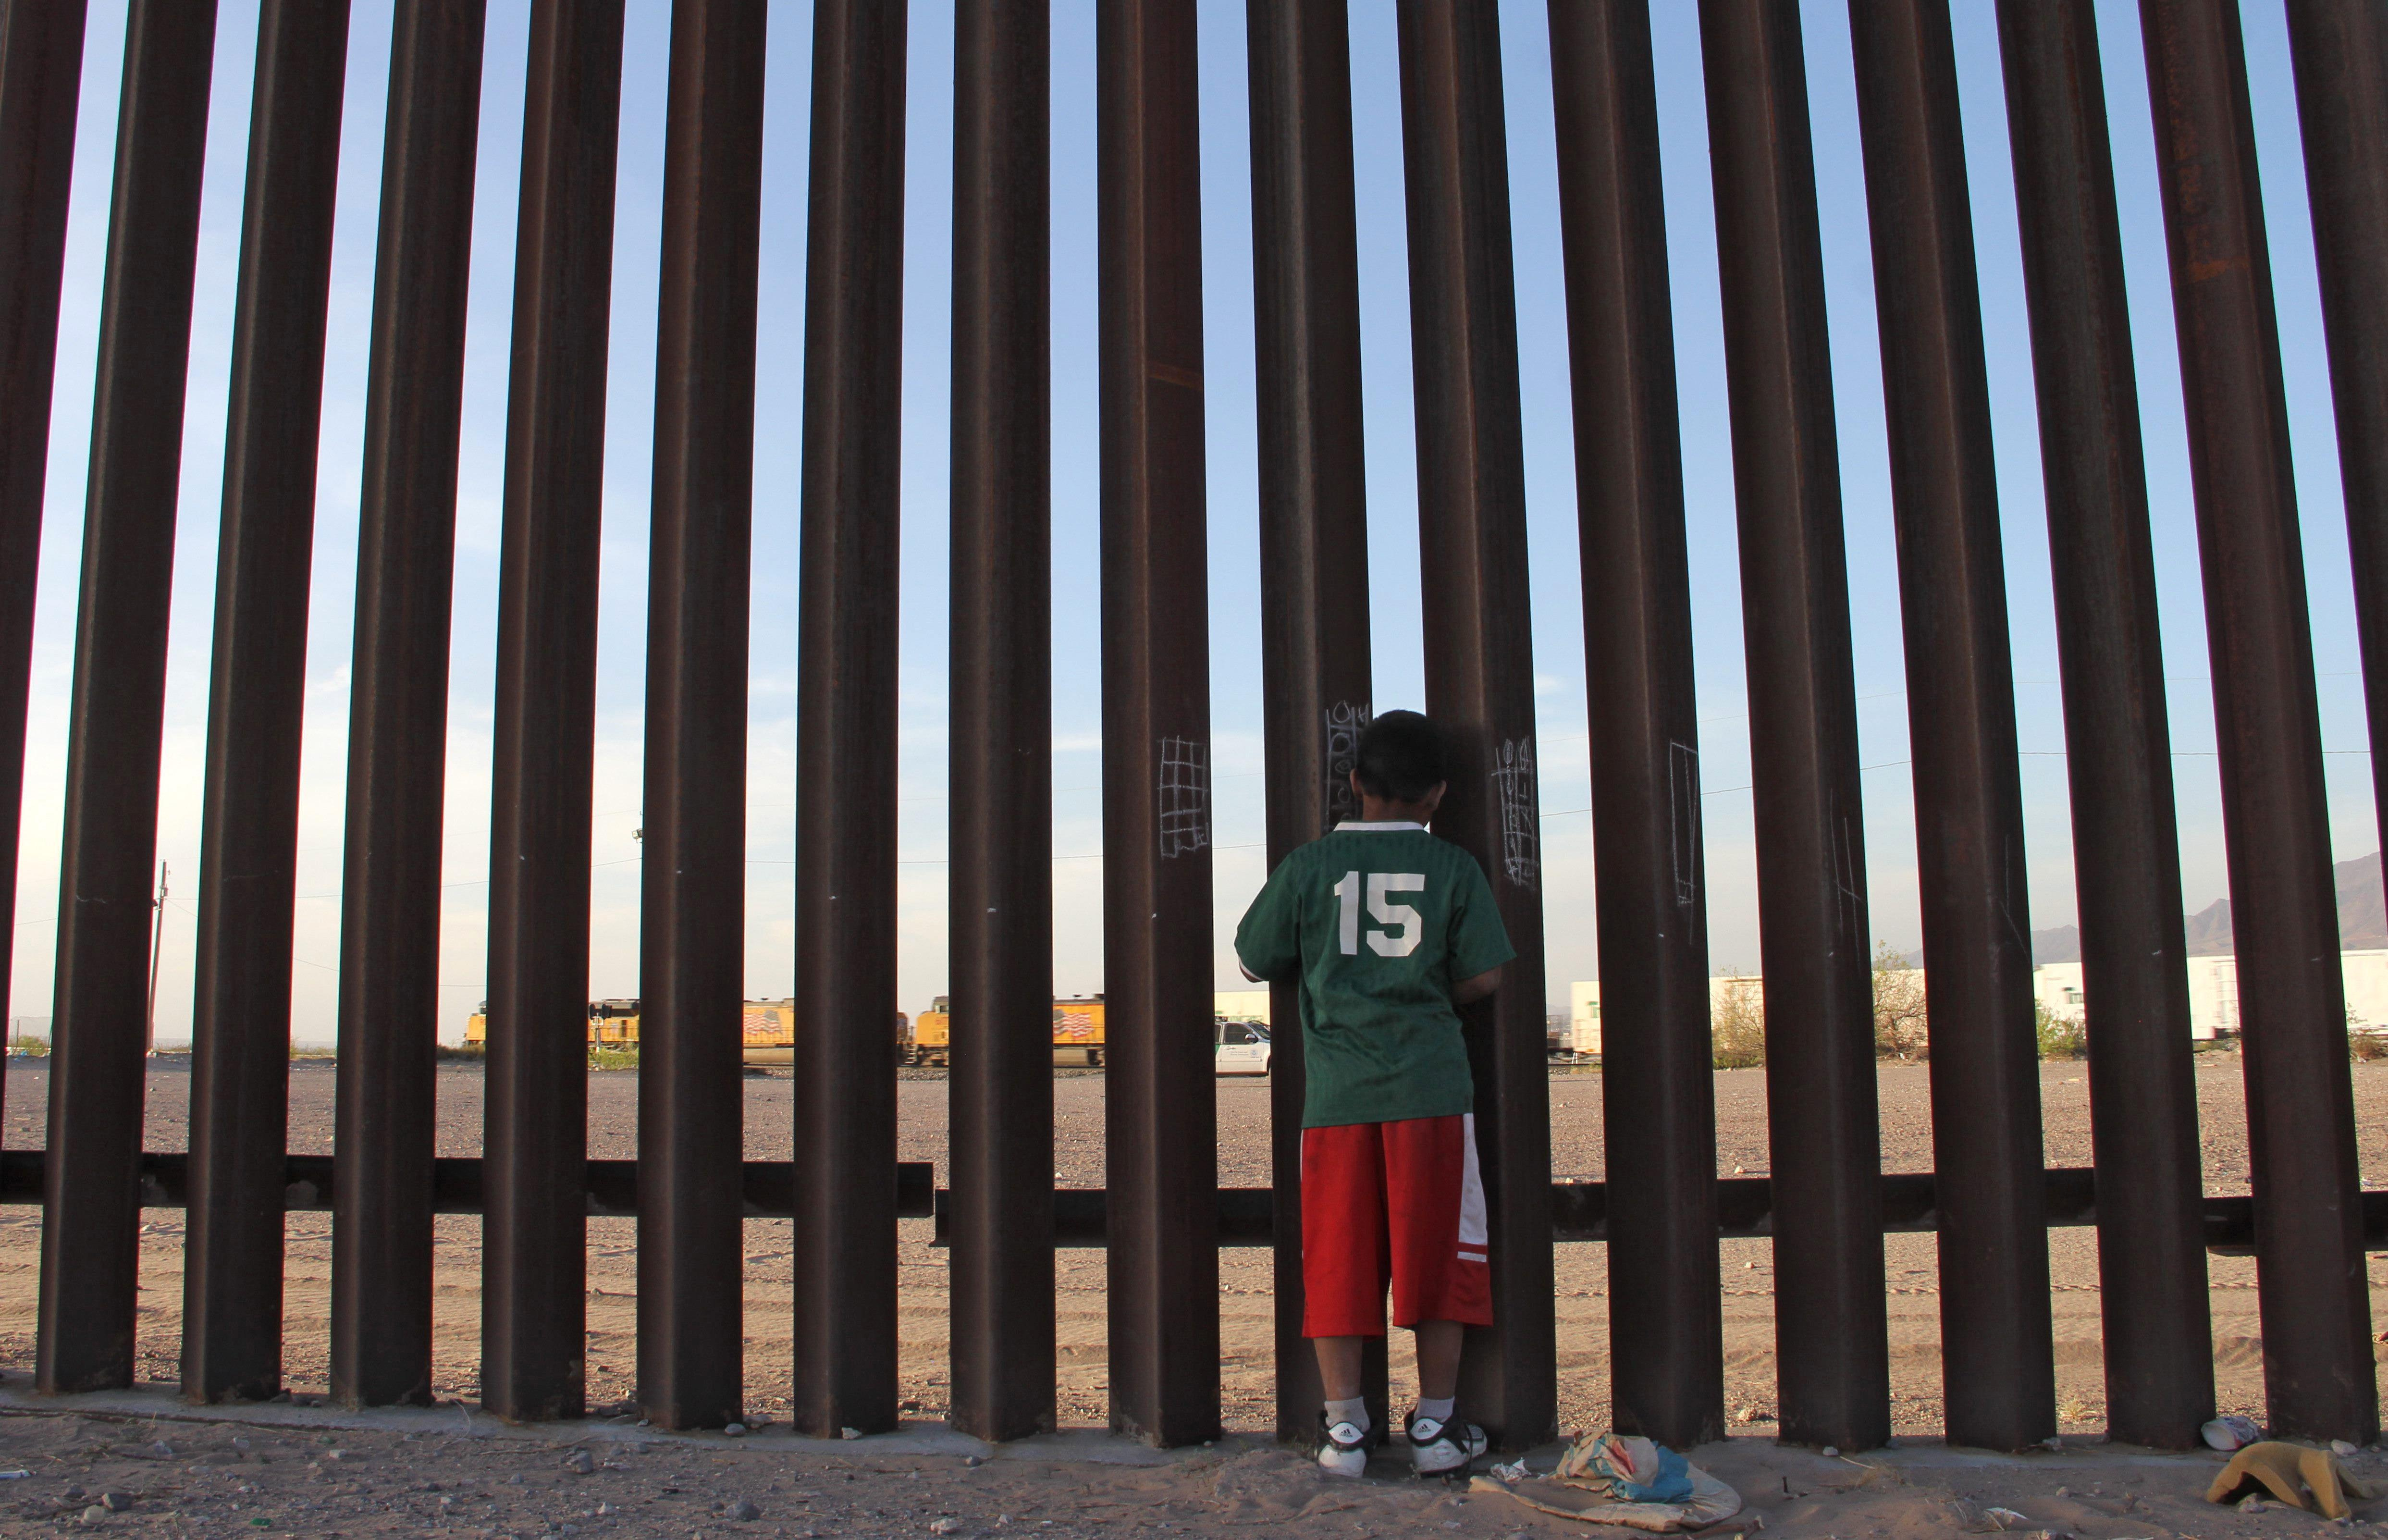 A Mexican child looks at a vehicle of the US border patrol through the US-Mexico fence in Ciudad Juarez, Chihuahua state, Mexico on April 4, 2018.